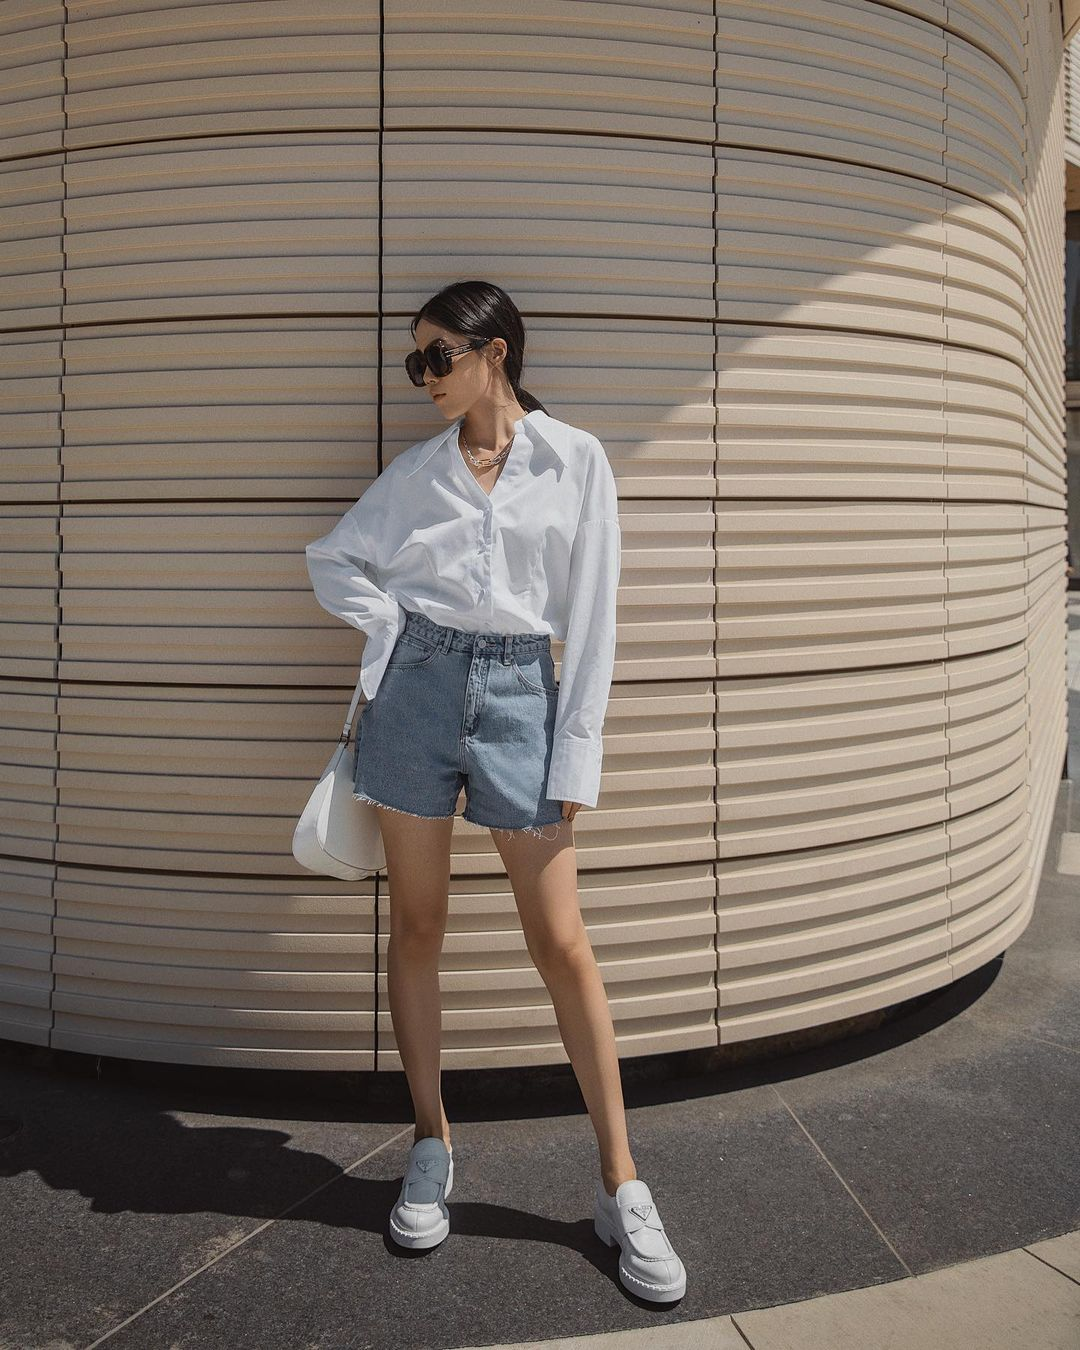 Basic to Amazing - Affordable Tips to Upgrade Your Summer Wardrobe